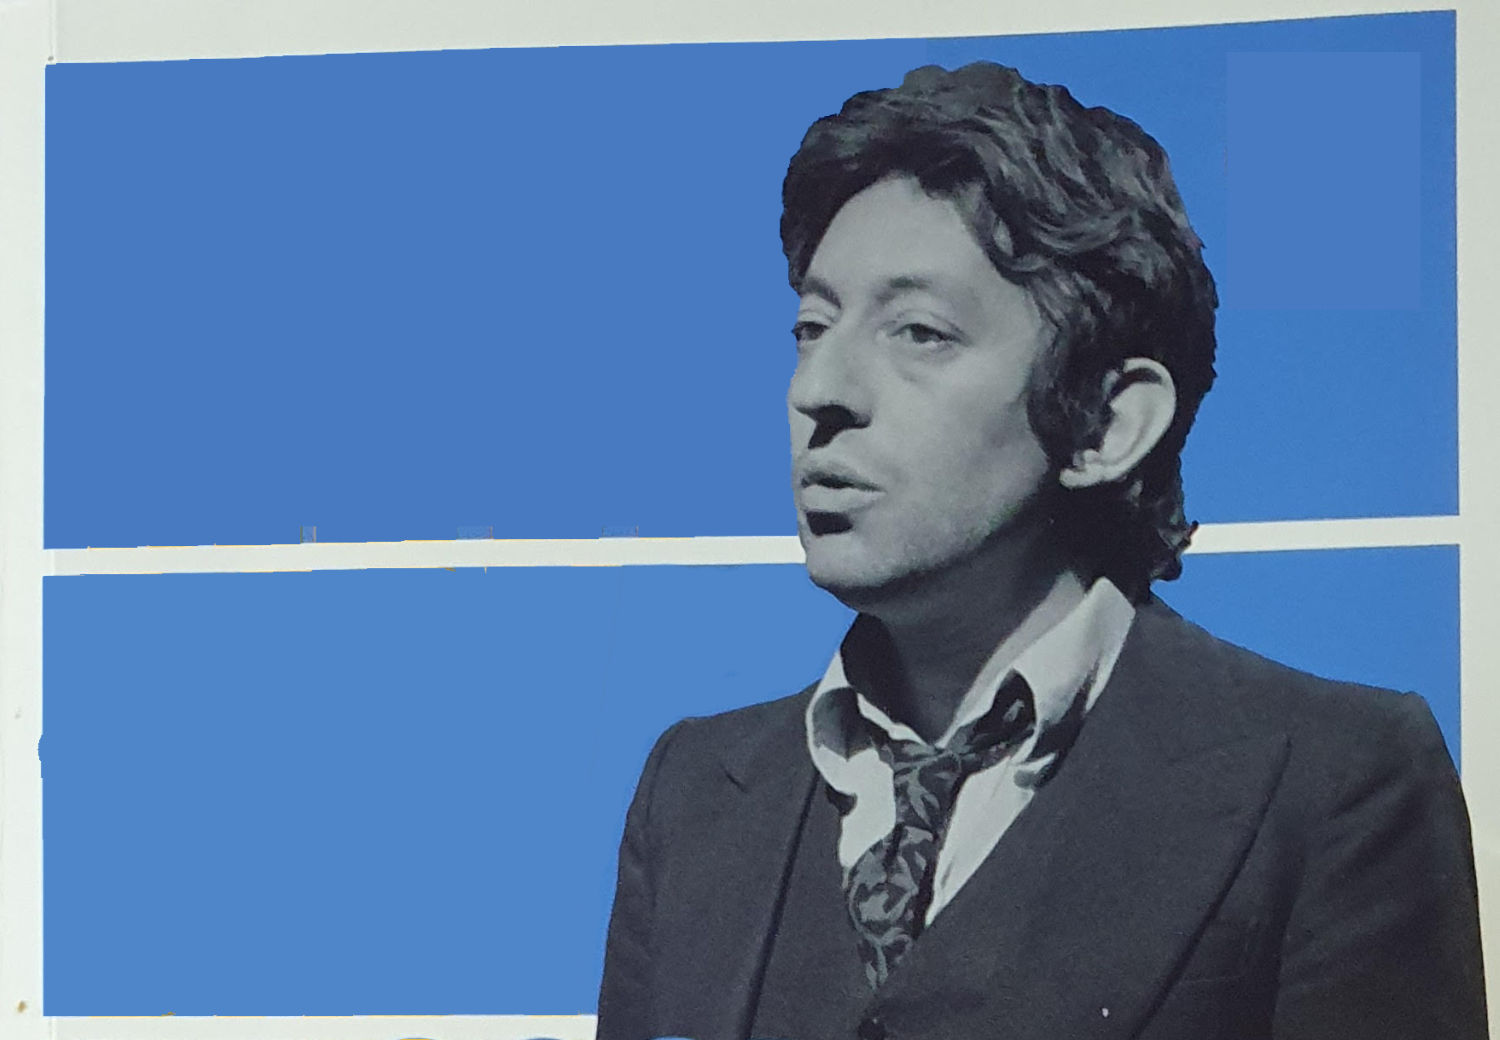 Serge Gainsbourg: Relax Baby be Cool